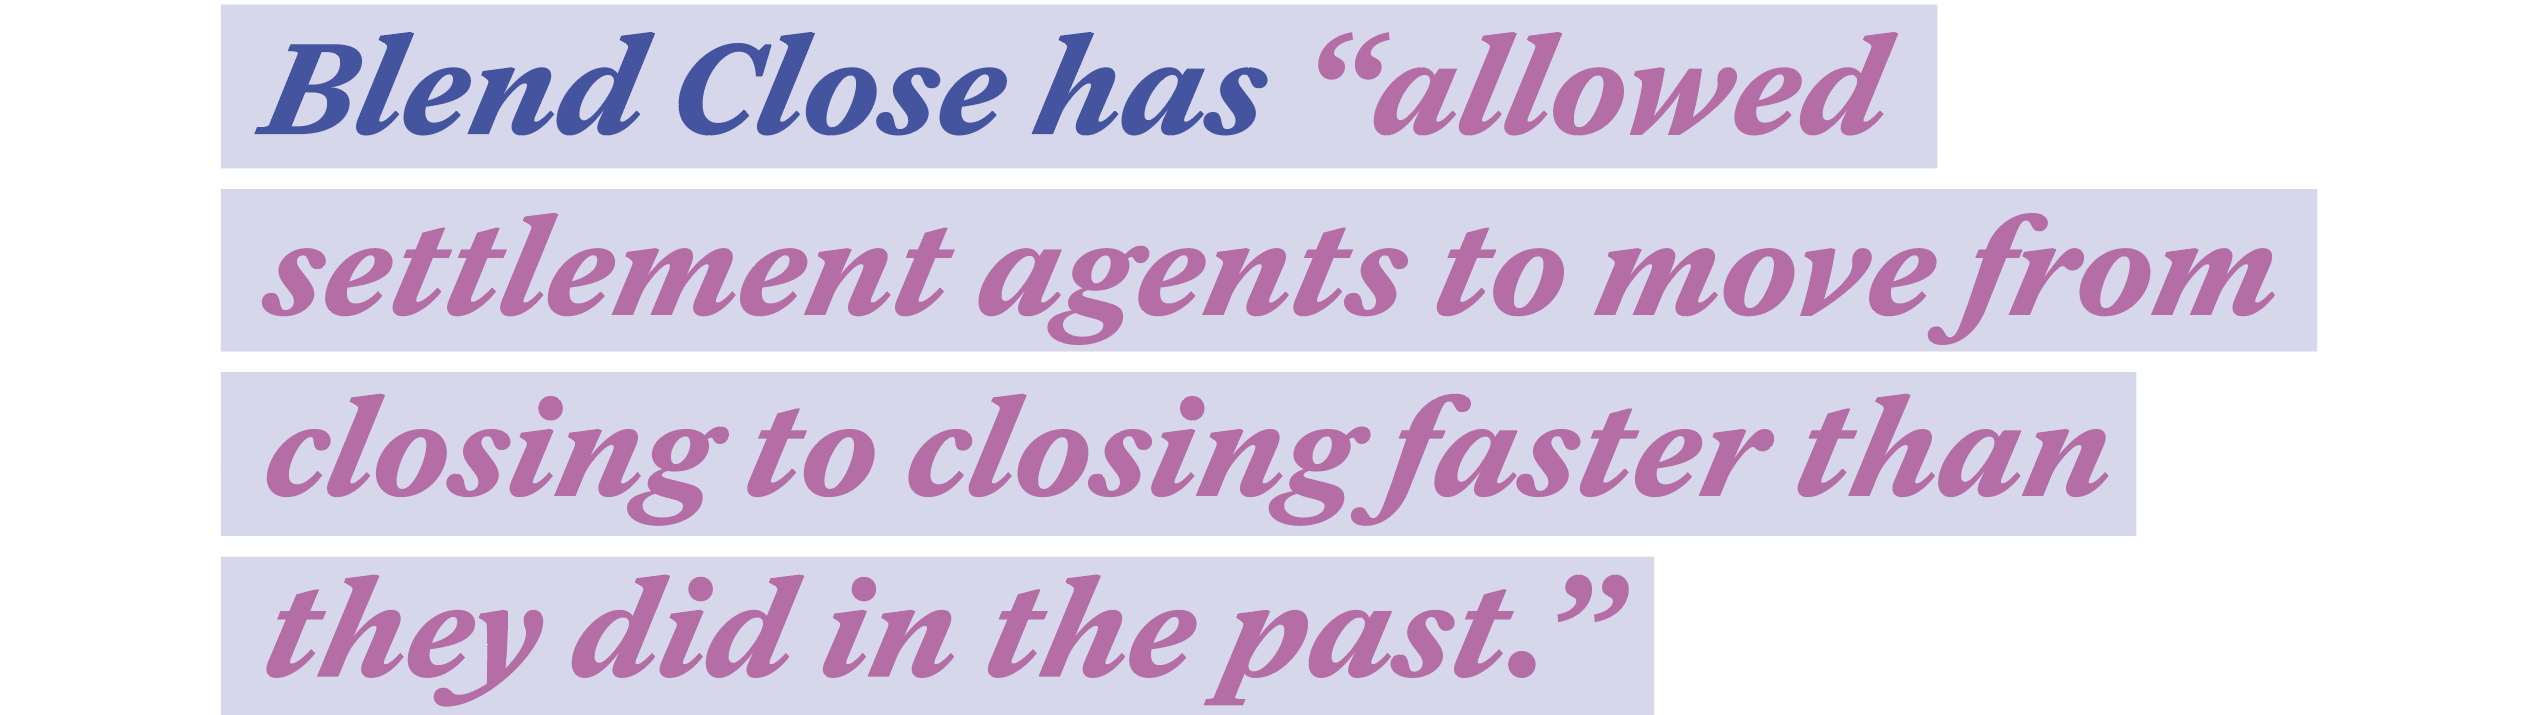 """Blend Close has """"allowed settlement agents to move from closing to closing faster than they did in the past"""